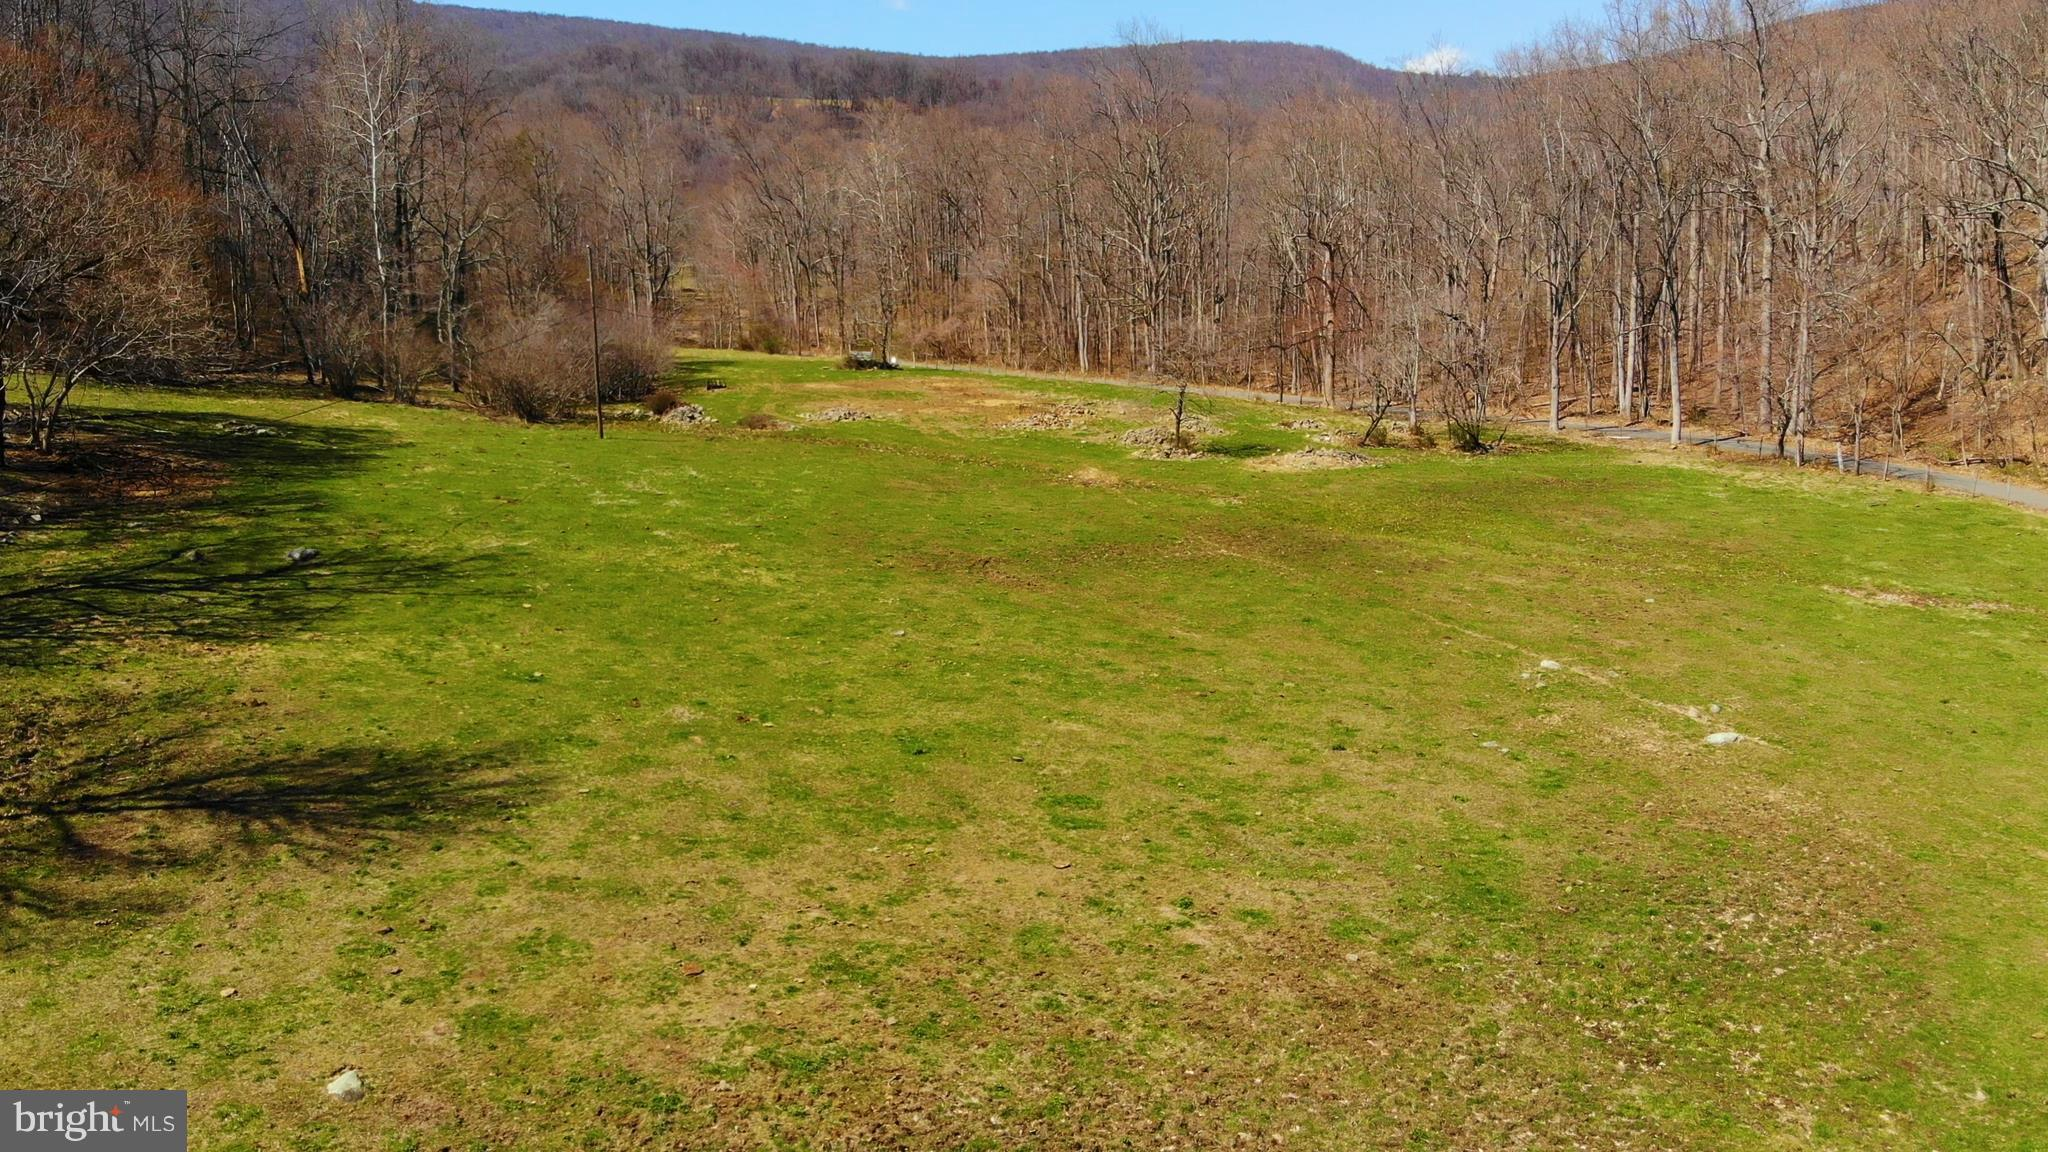 POINTER RIDGE LANE, WASHINGTON, VA 22747